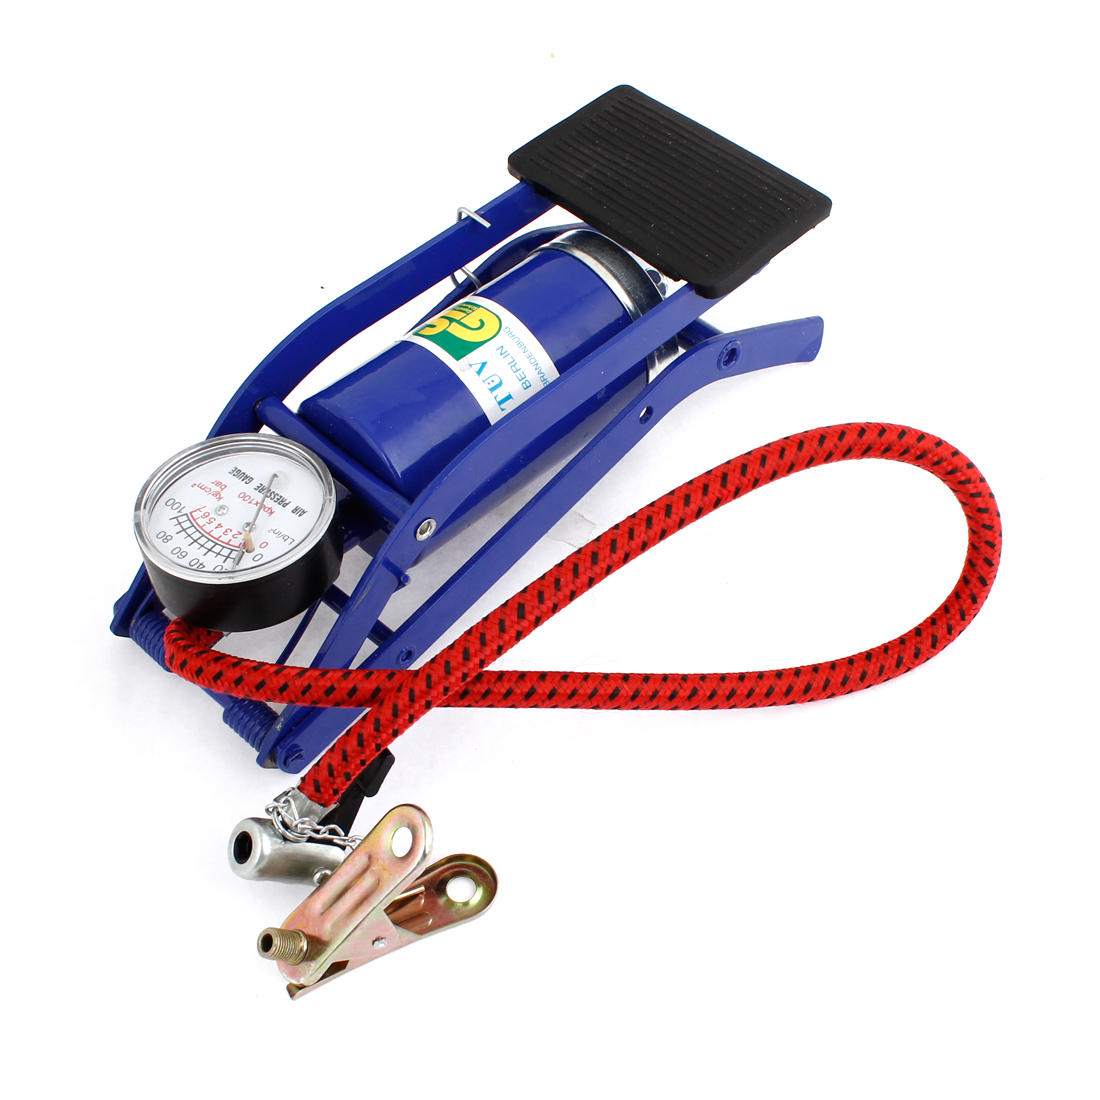 Blue Metallic Foot Pump Air Pressure Gauge for Bike Bicycle Football